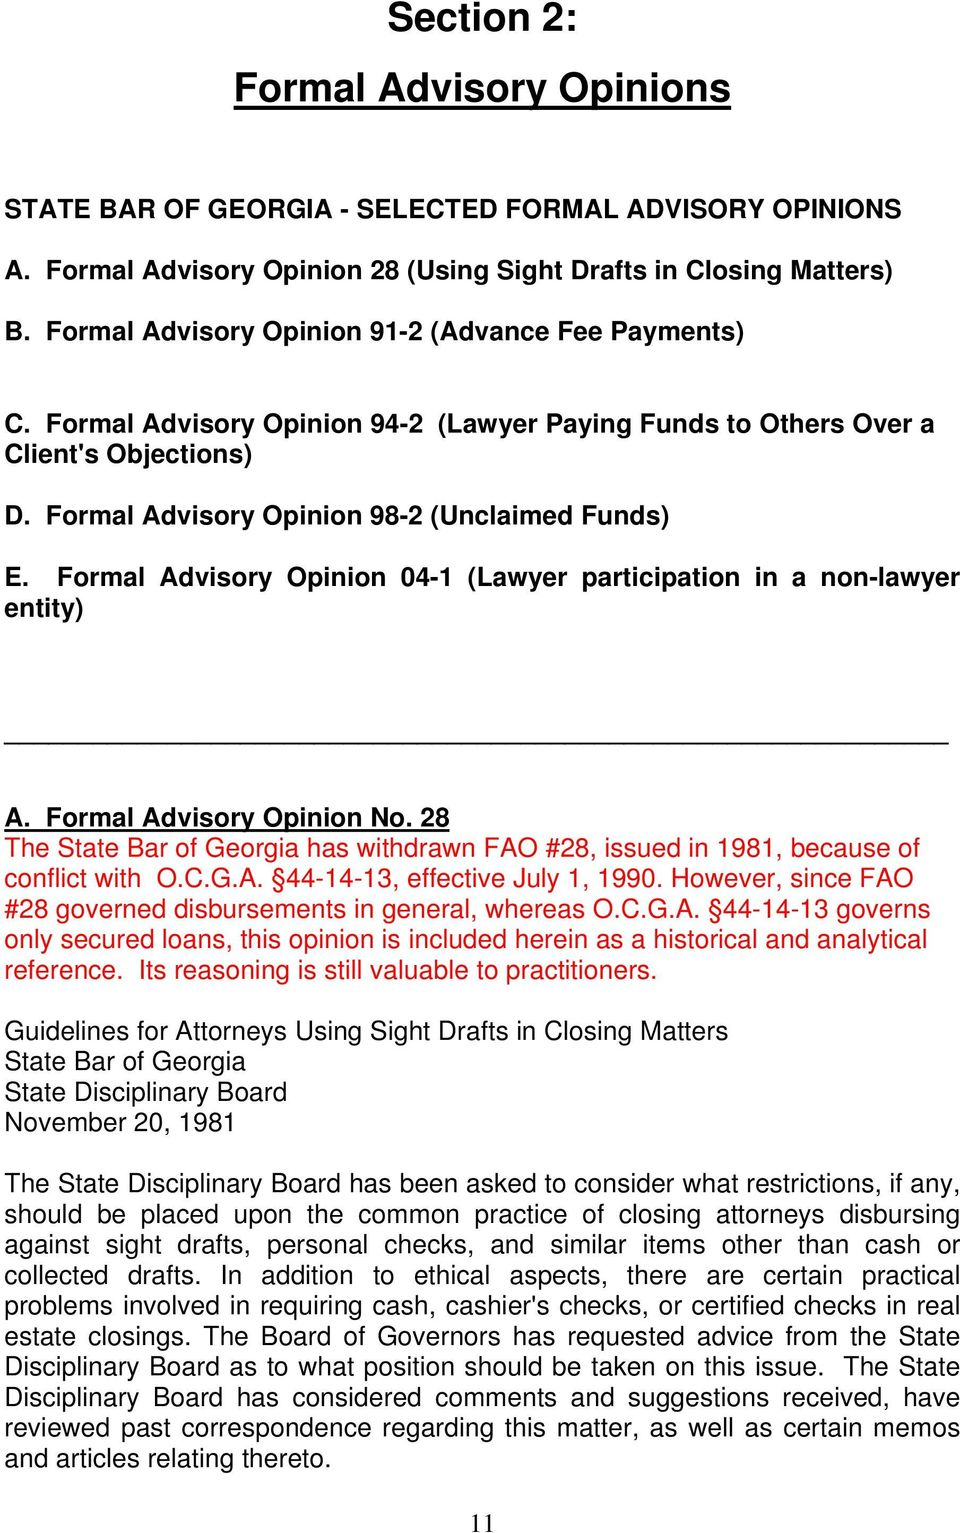 Formal Advisory Opinion 04-1 (Lawyer participation in a non-lawyer entity) A. Formal Advisory Opinion No. 28 The State Bar of Georgia has withdrawn FAO #28, issued in 1981, because of conflict with O.